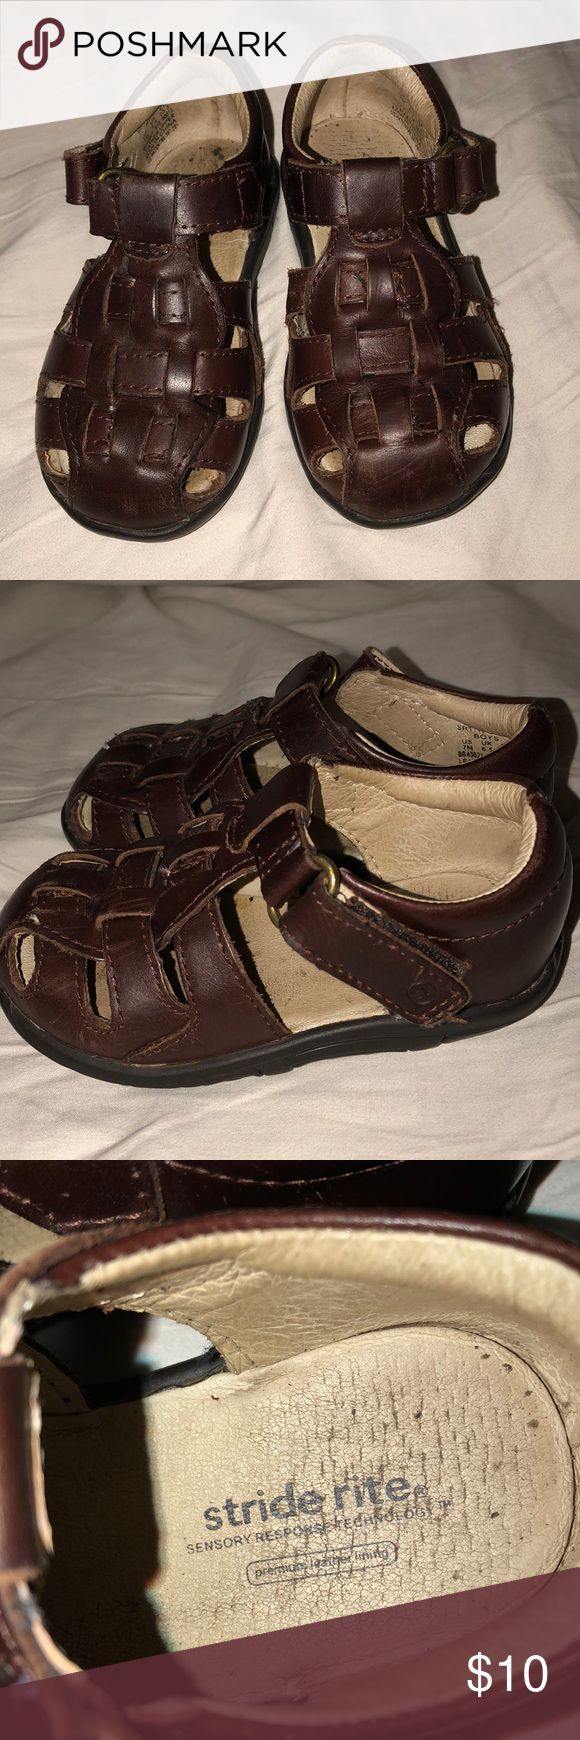 Stride Rite Toddler Sandals Like new! Toddler boys size 7, Velcro straps. Stride Rite Shoes Sandals & Flip Flops